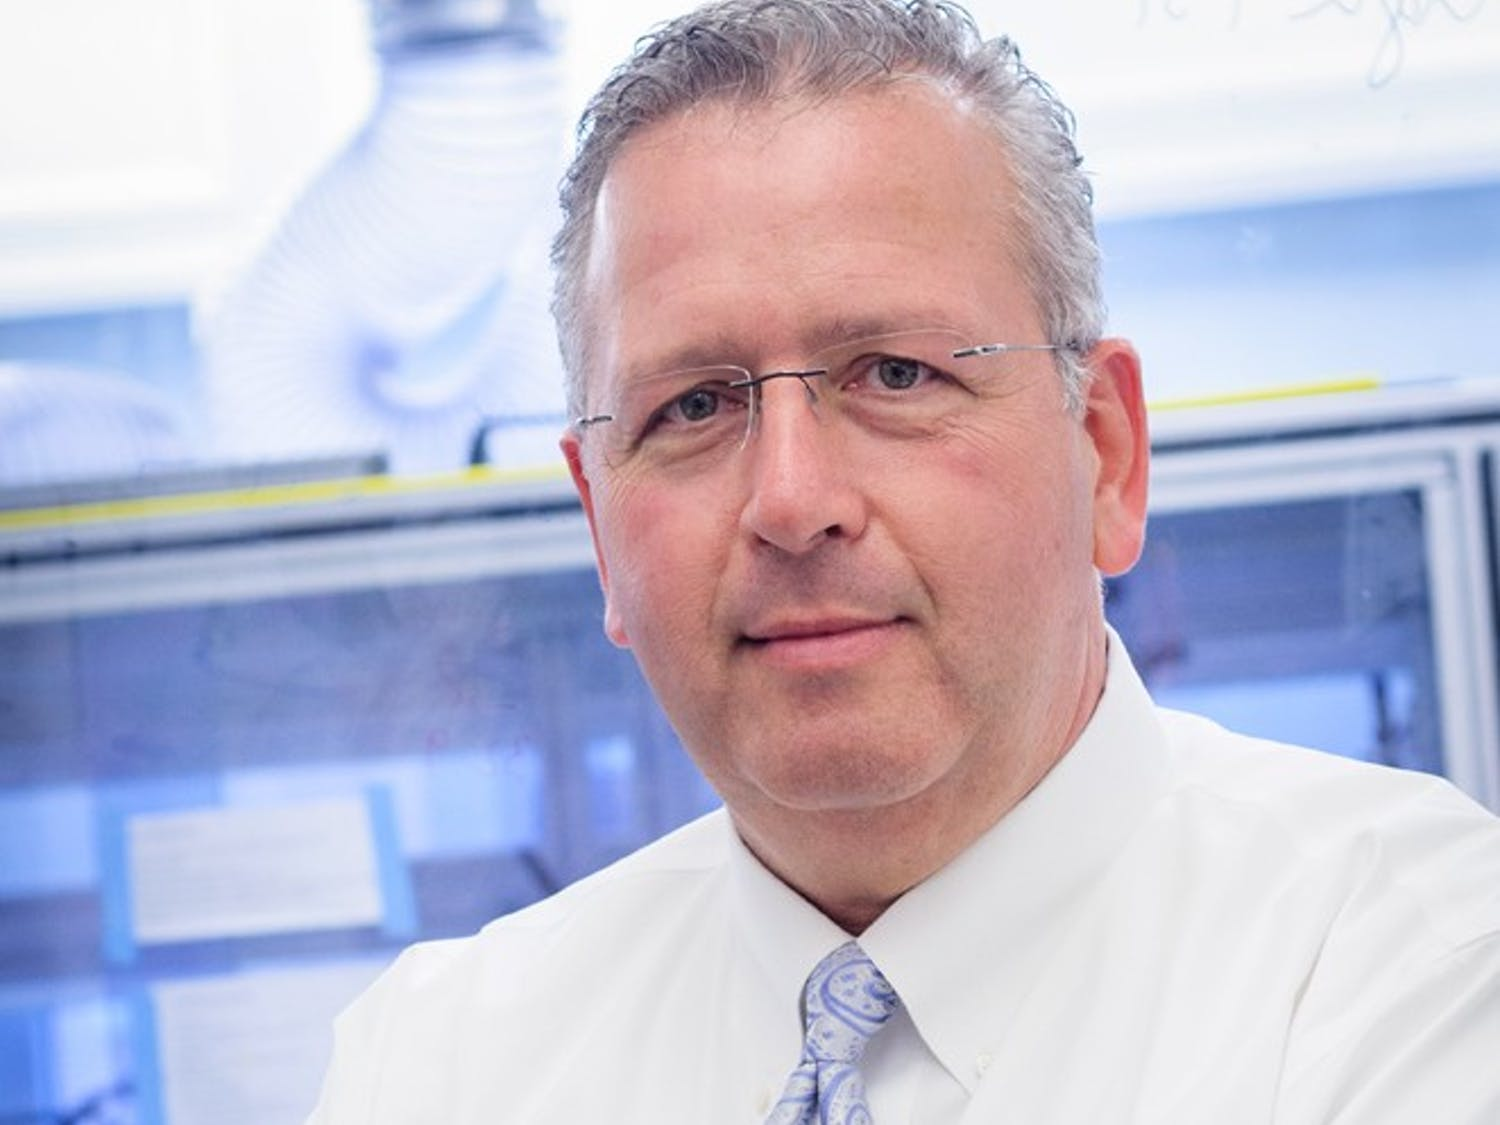 Professor Joseph DeSimone pictured in front of the roll-to-roll particle-fabrication unit housed at UNC-Chapel Hill's Caudill Labs. Roll-to-roll fabrication technology is used in the manufacture of vaccines and medicines.